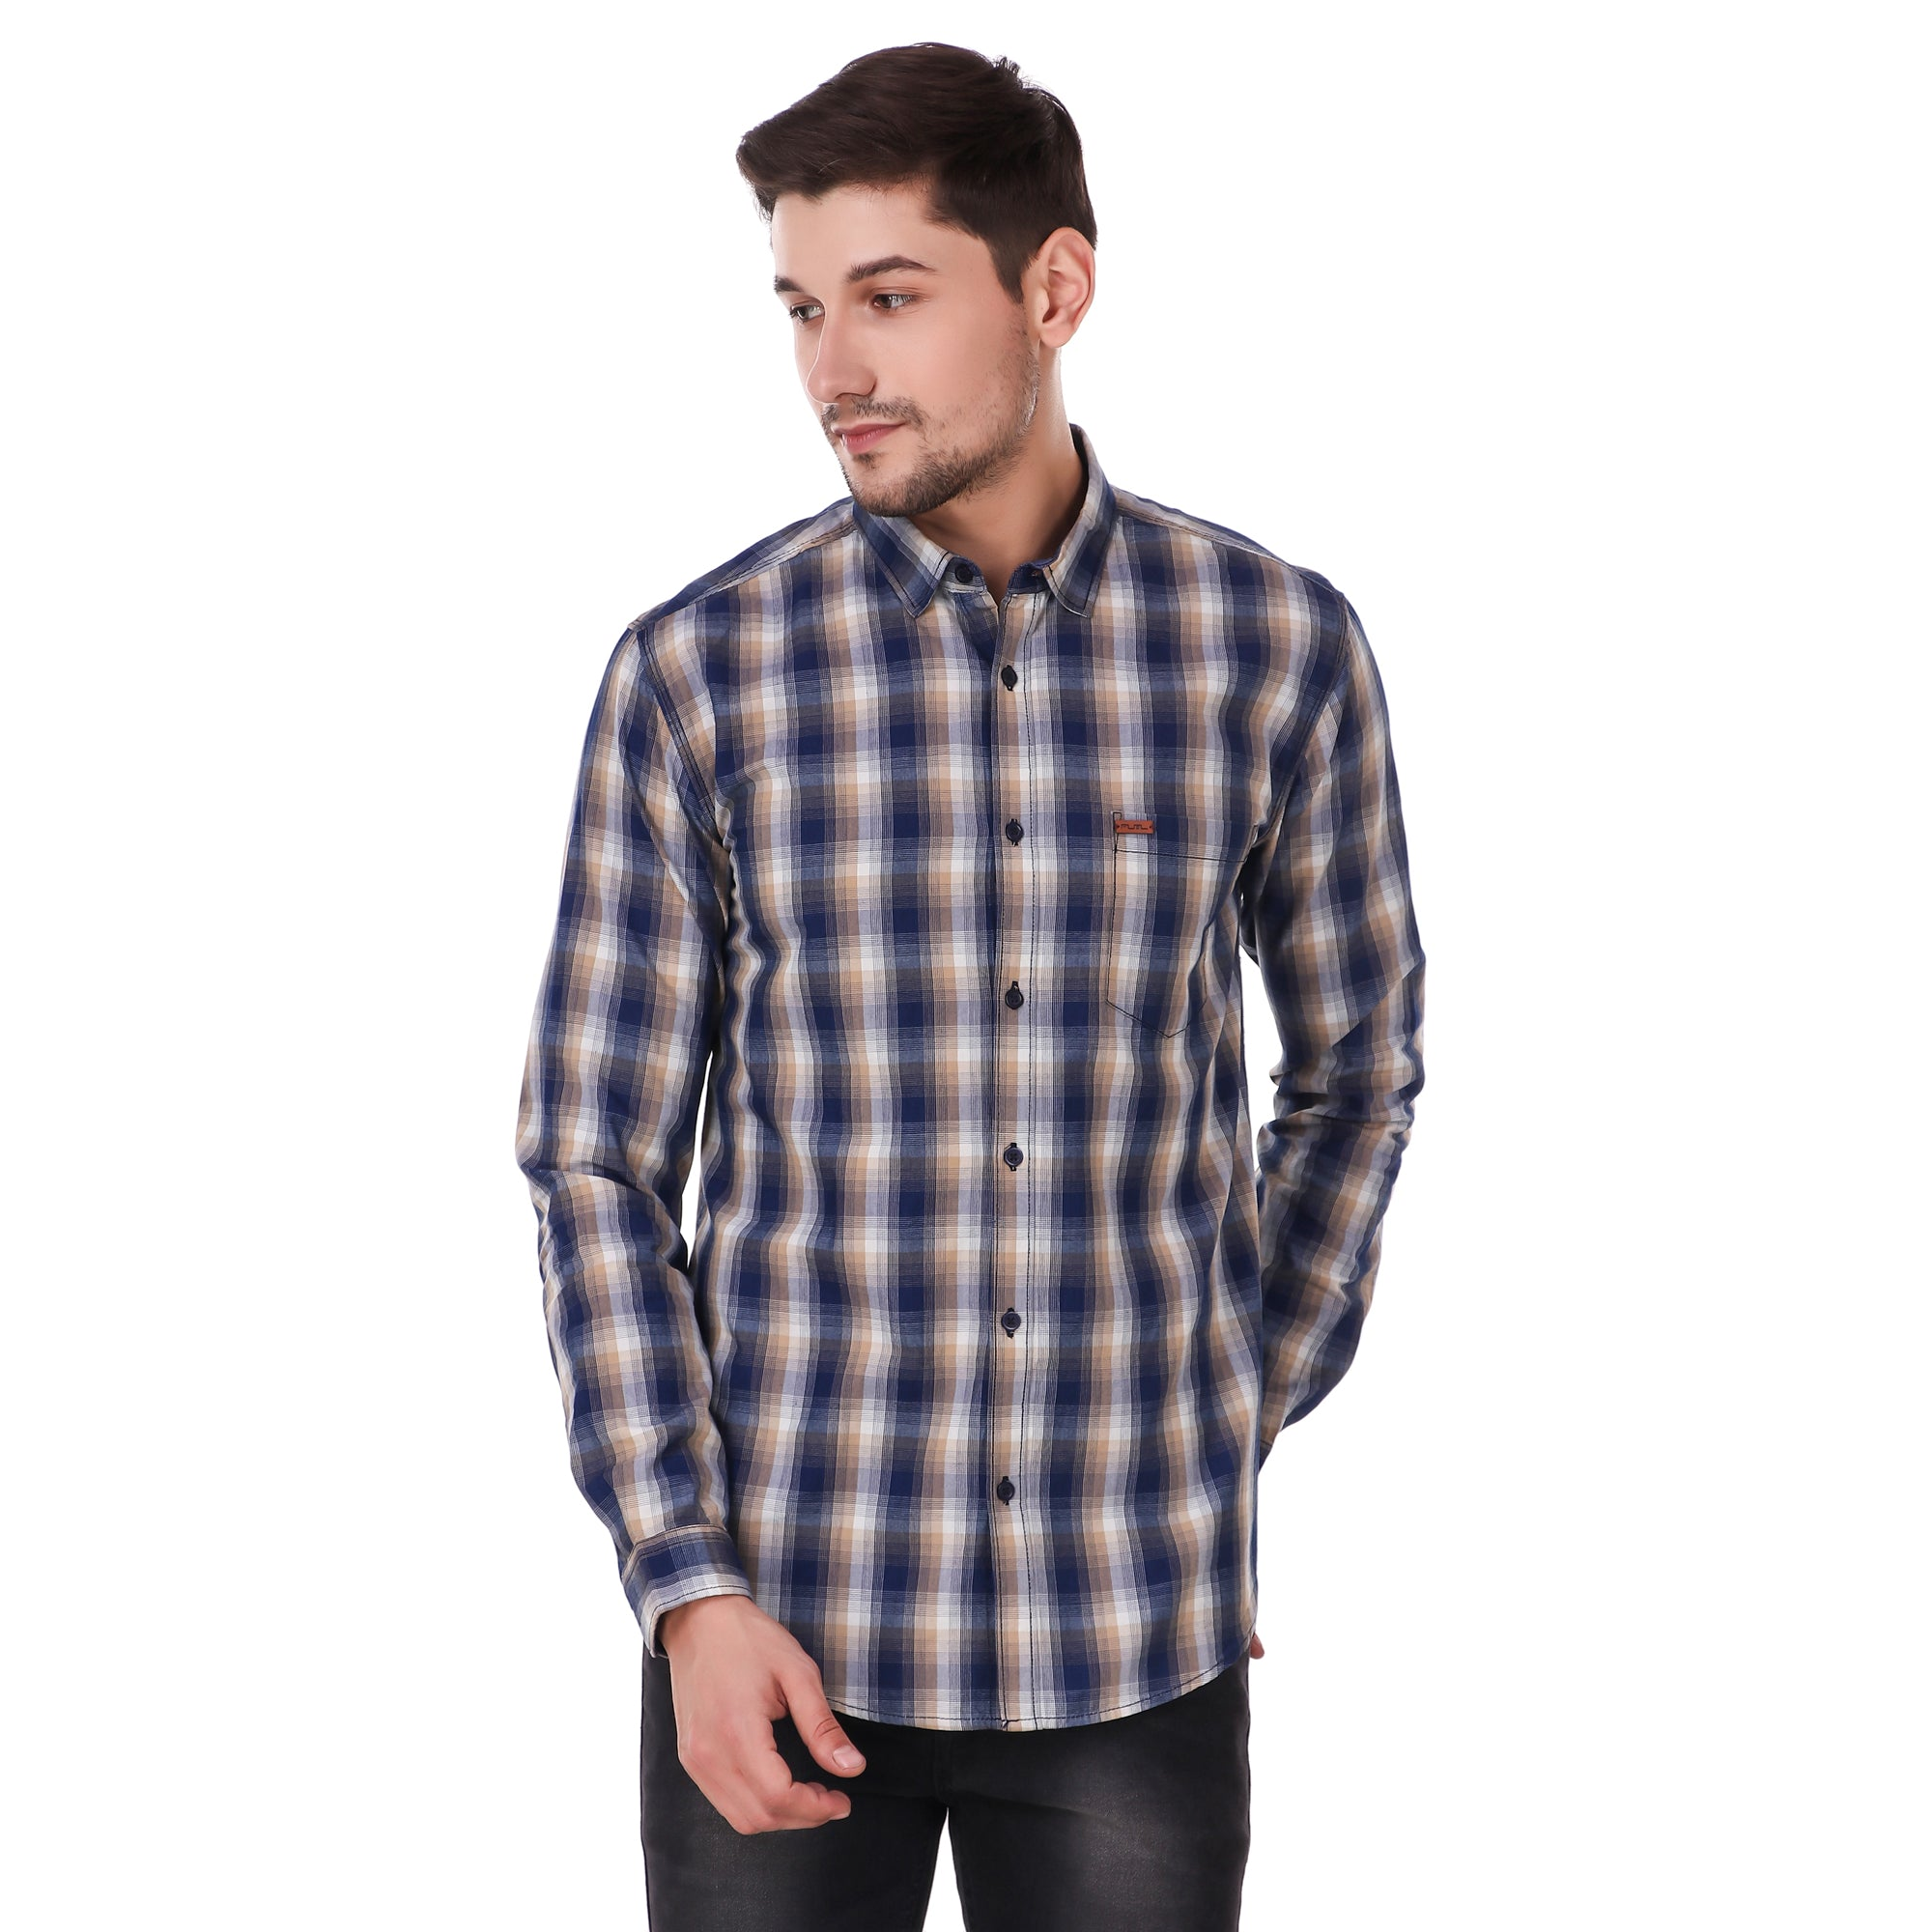 Fuel Factory Indigo Blue & White Checked Casual Slim Fit Shirt